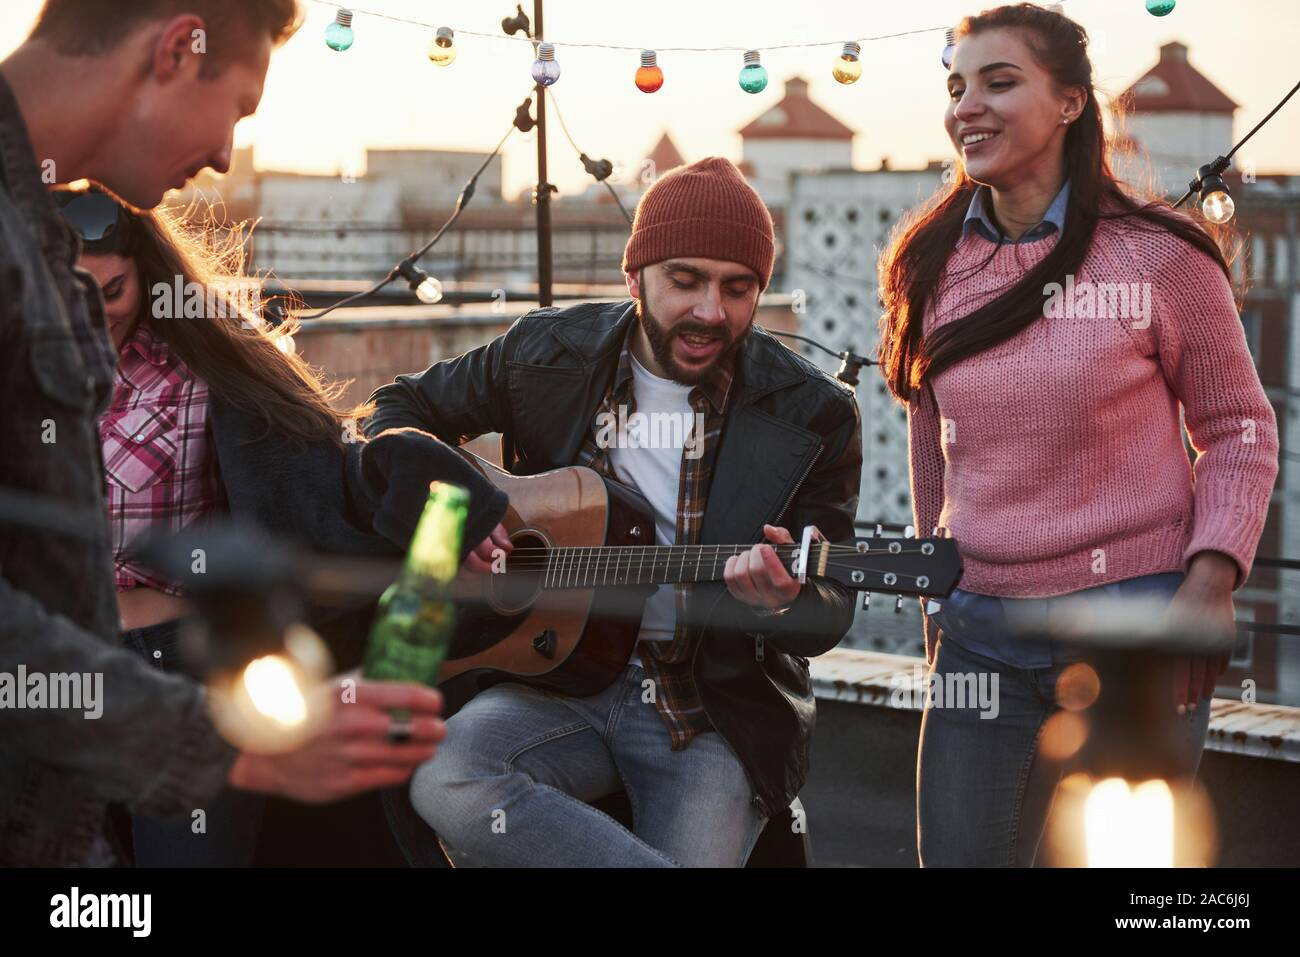 Play at the musical instrument is always good skill to have. Guitarist sits and singing for his friends at the rooftop with decorative colored light Stock Photo